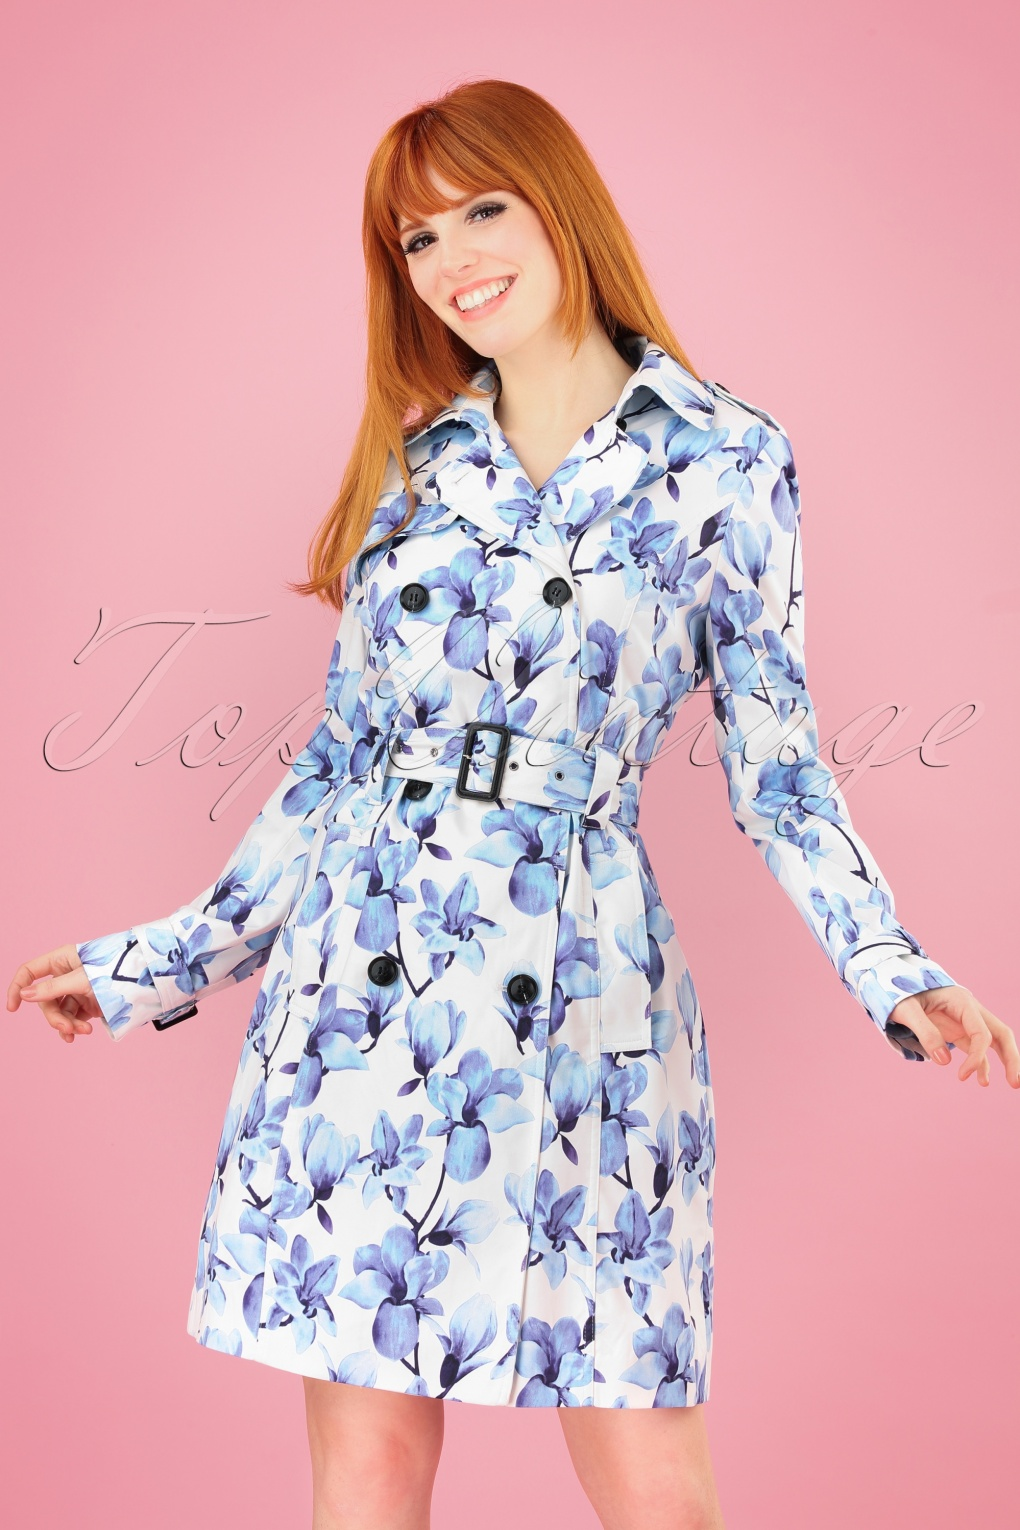 Vintage Coats & Jackets | Retro Coats and Jackets 60s Bionda Floral Trench Coat in White and Blue £60.18 AT vintagedancer.com